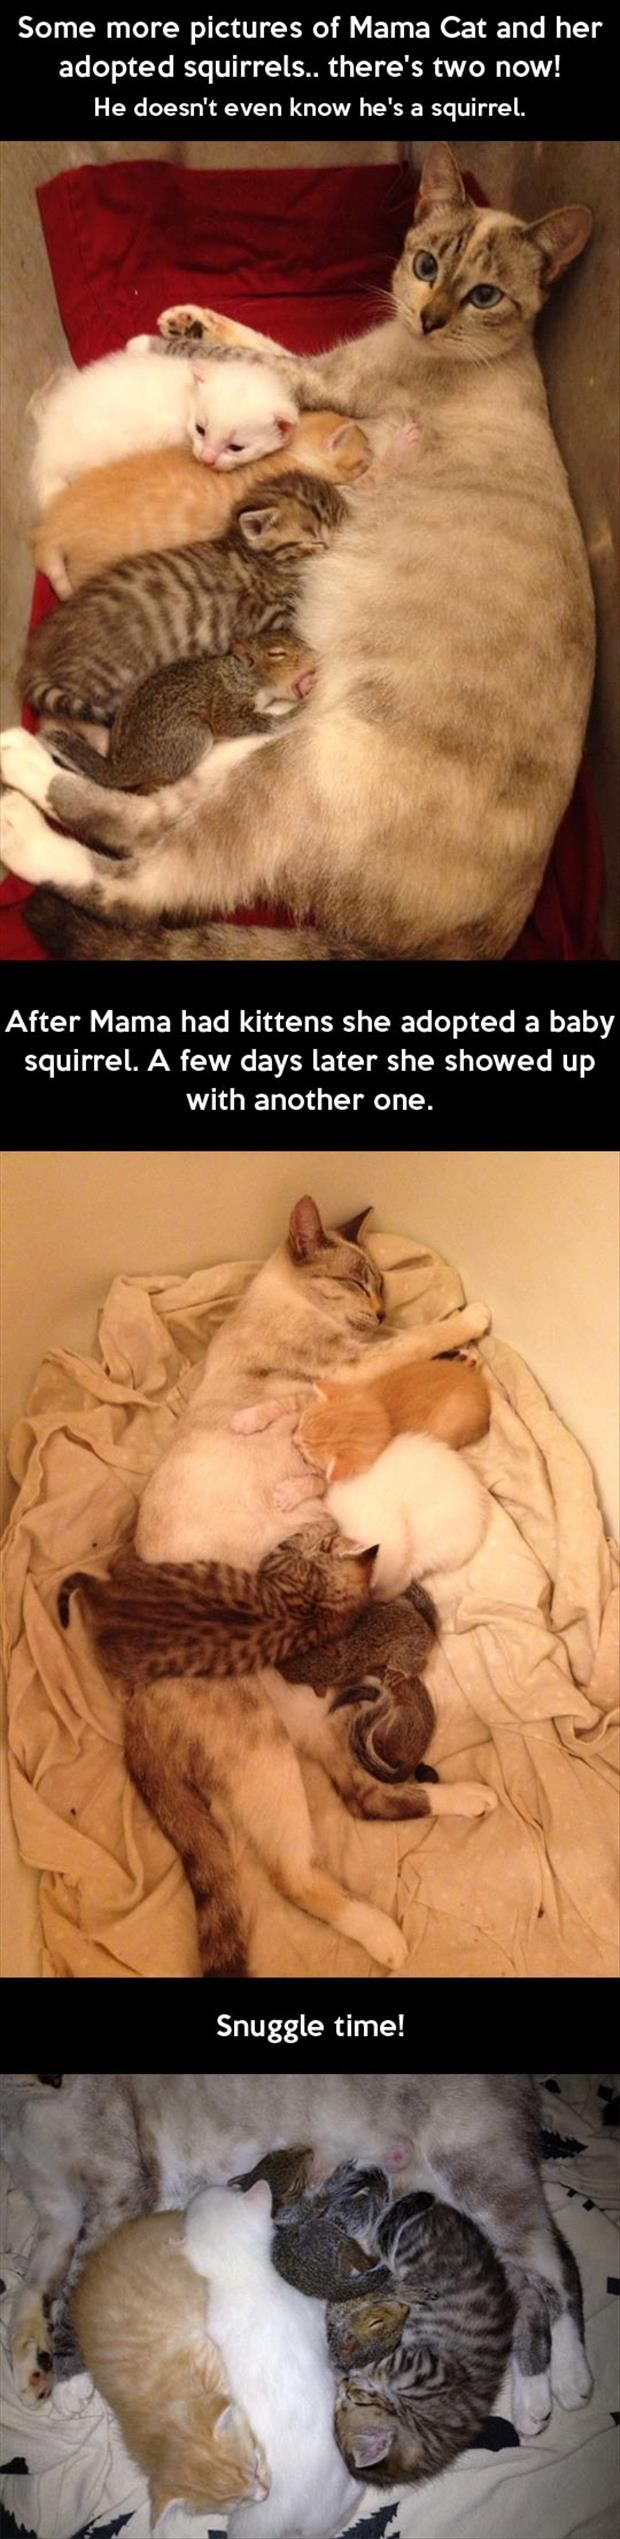 Mama kitty, baby kitties, baby squirrels.  Just a big, happy family.  <3